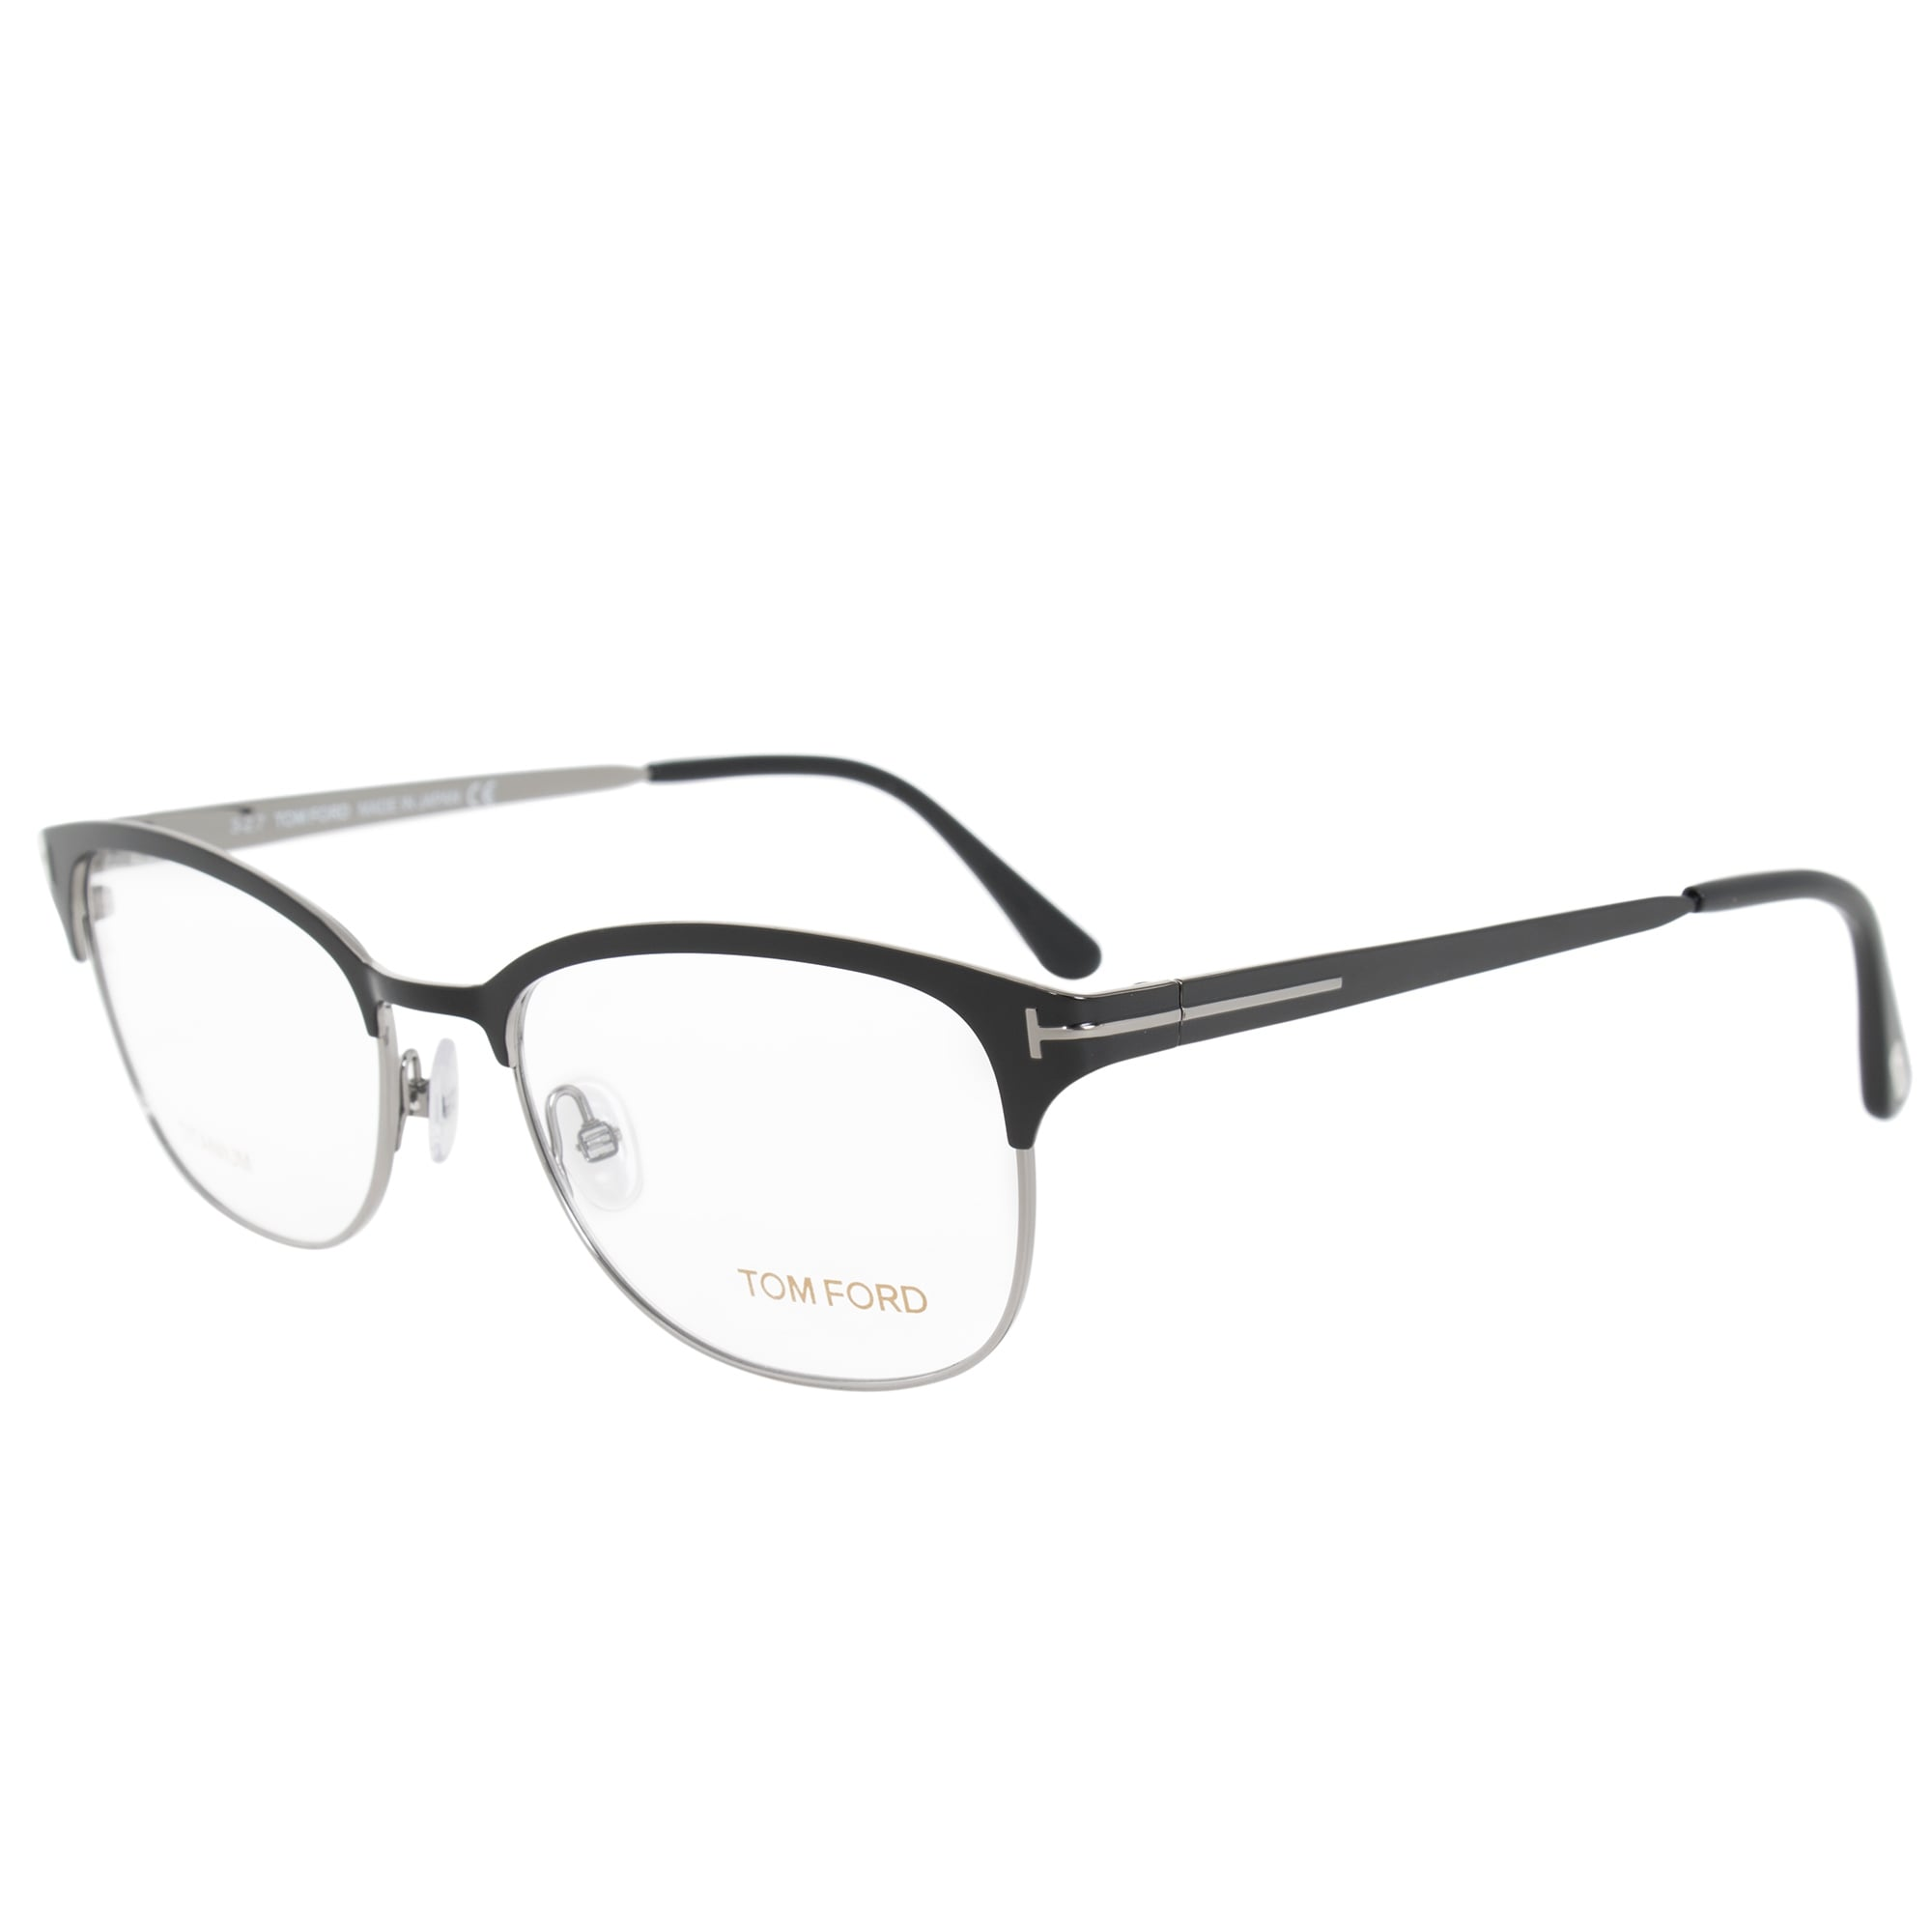 9c87e1fe0e184 Shop Tom Ford FT5381 005 52 Wayfarer - On Sale - Free Shipping Today -  Overstock - 21408643